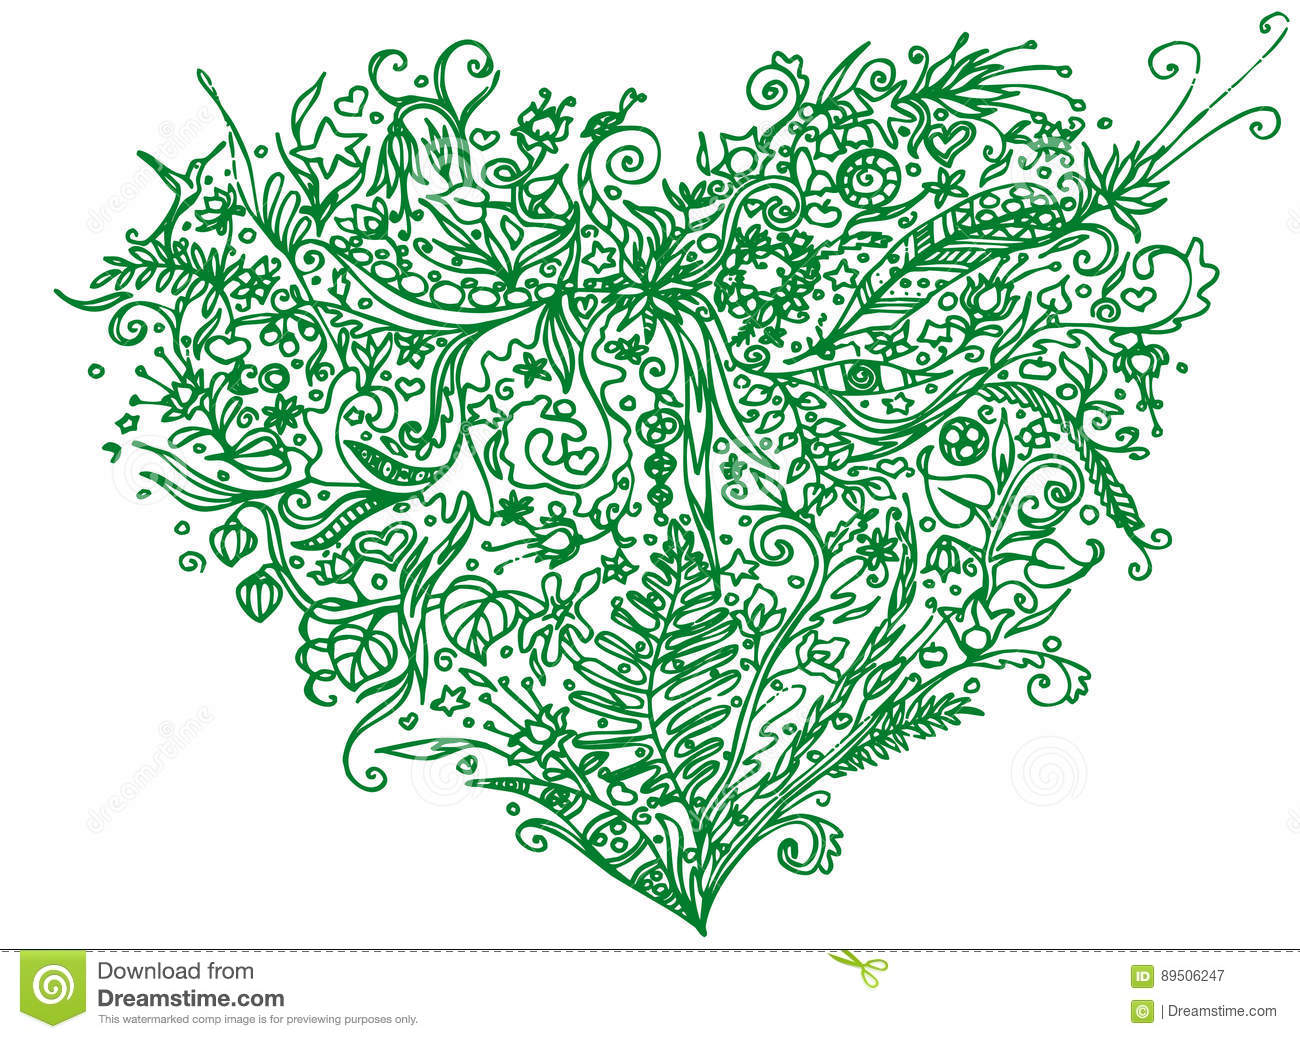 Green Heart In Zentangle Style. Isolated On White Background. Herbal ...